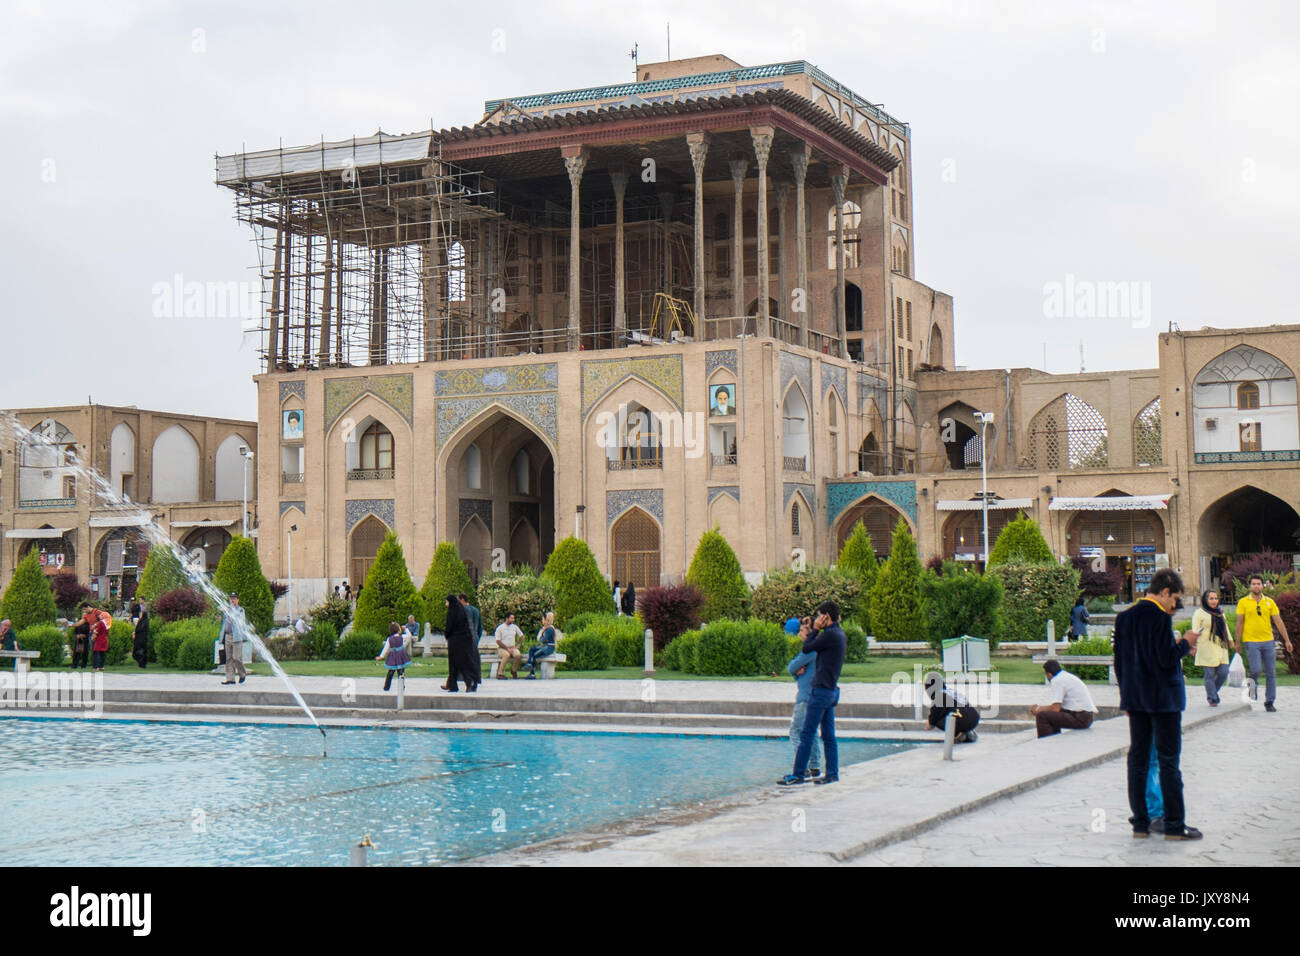 Iran: the Ali Qapu or Great Persian Palace viewed from Naghsh-i Jahan Square (Imam Square or Shah Square) in Isfahan Stock Photo